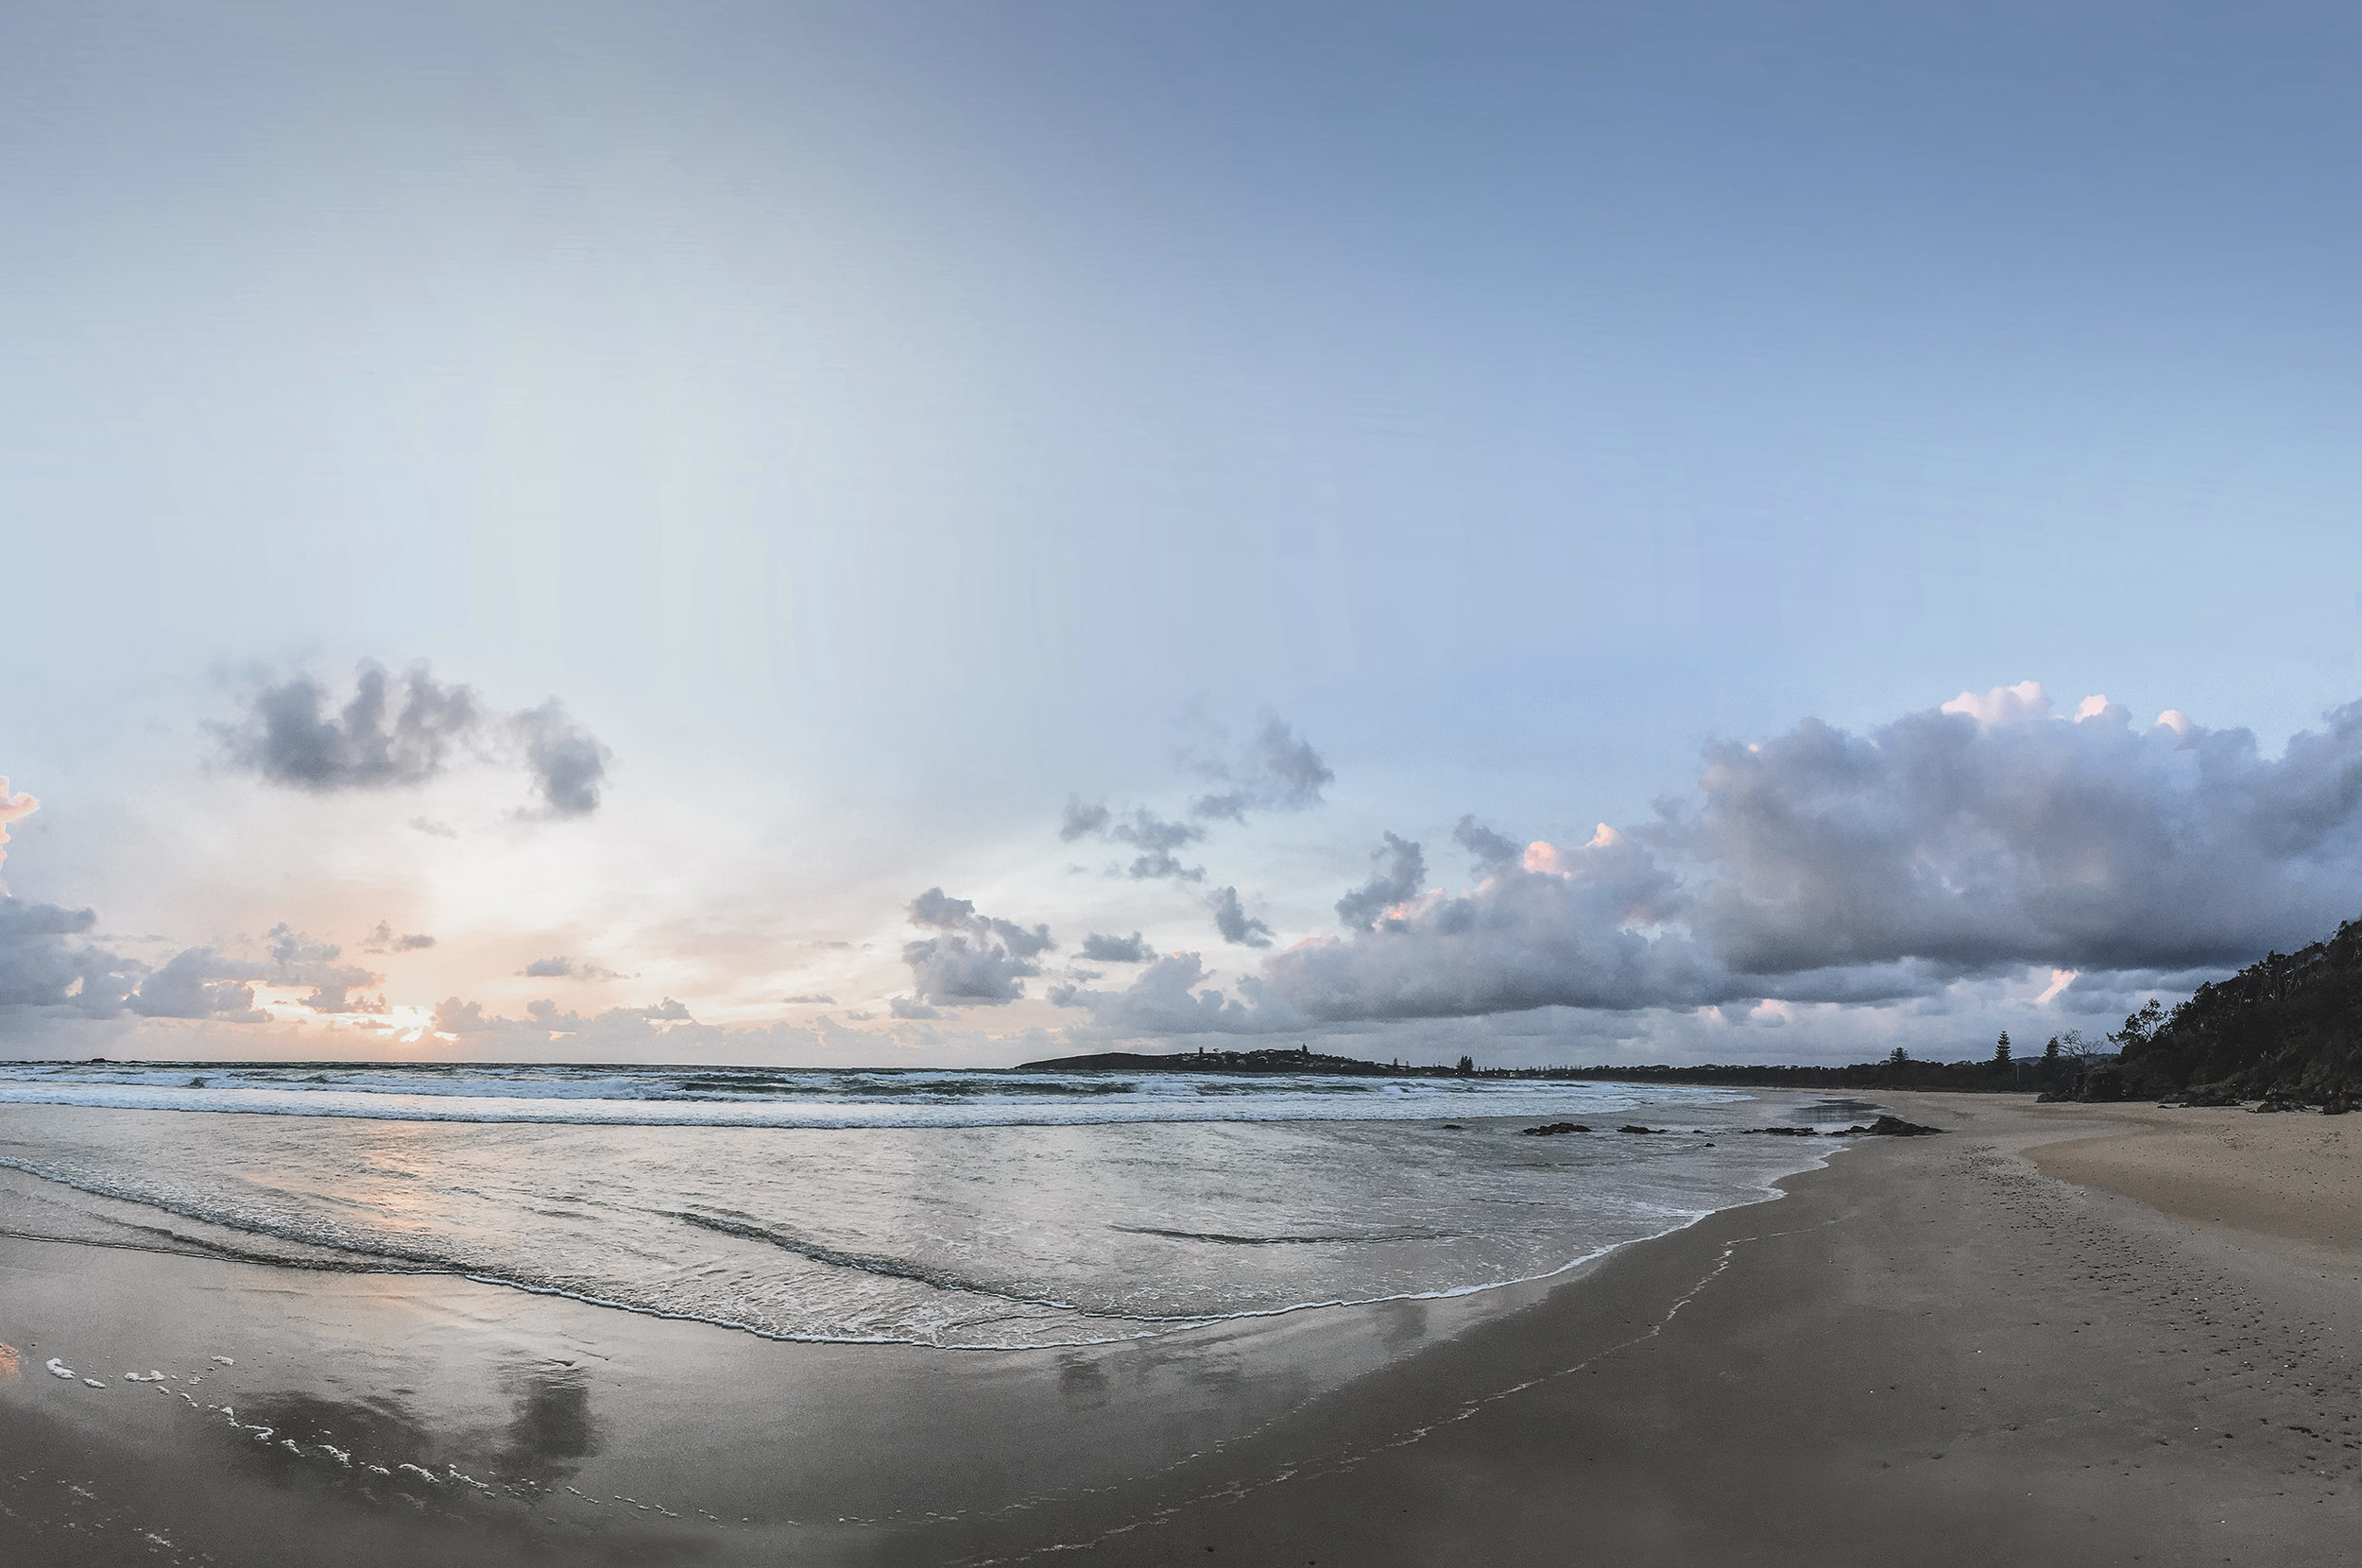 Barellen-3a-2-Beach-Ocean-Landscapes-Safety-Beach-Pano.jpg